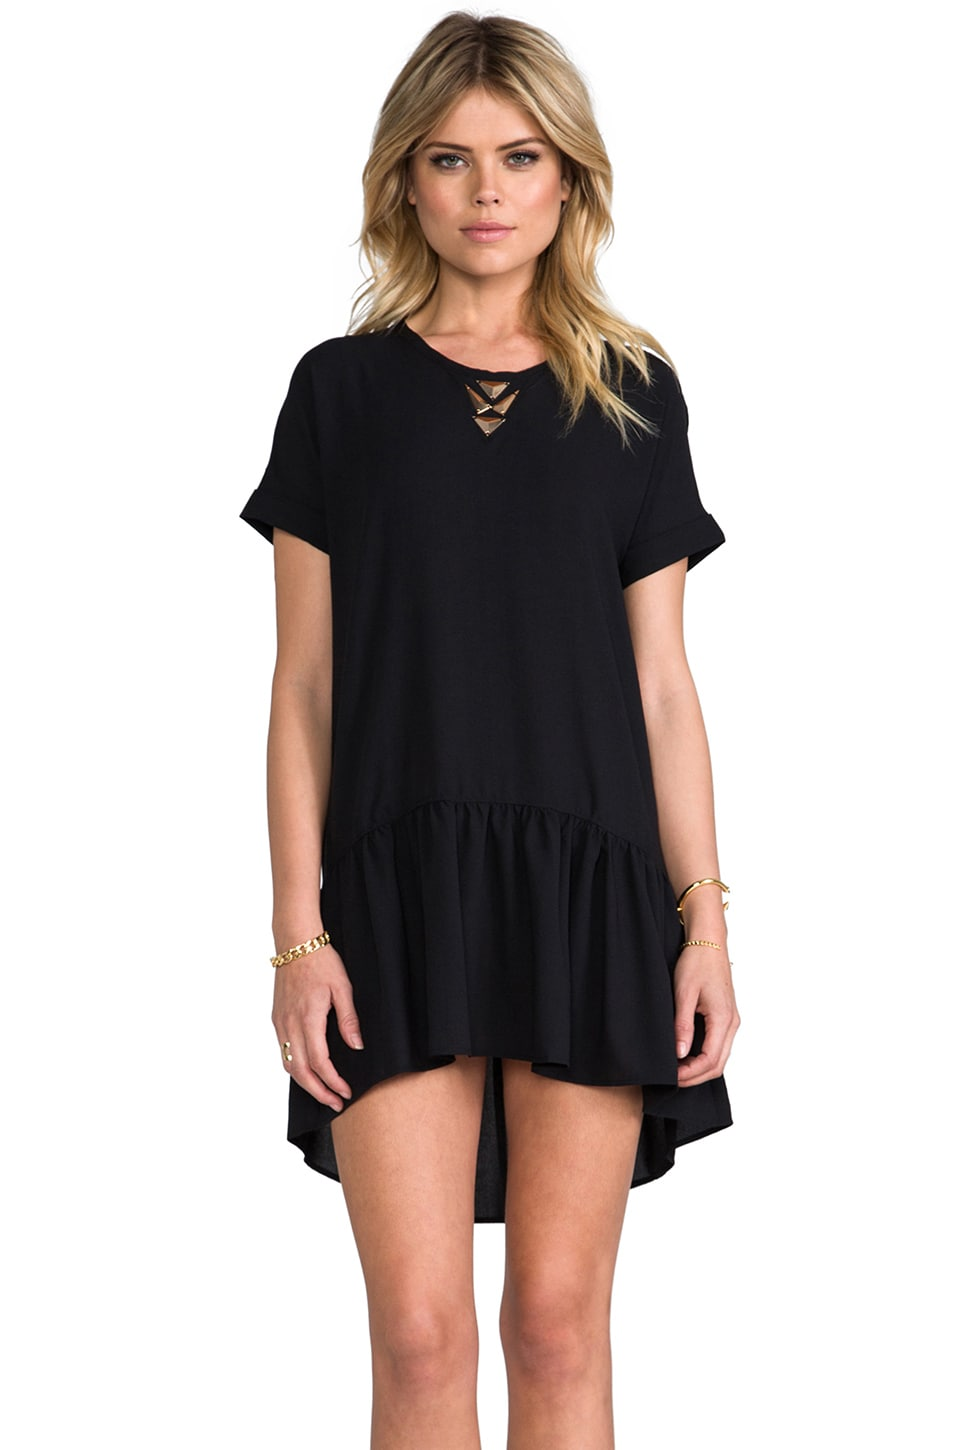 BY ZOE Trend Dress in Black